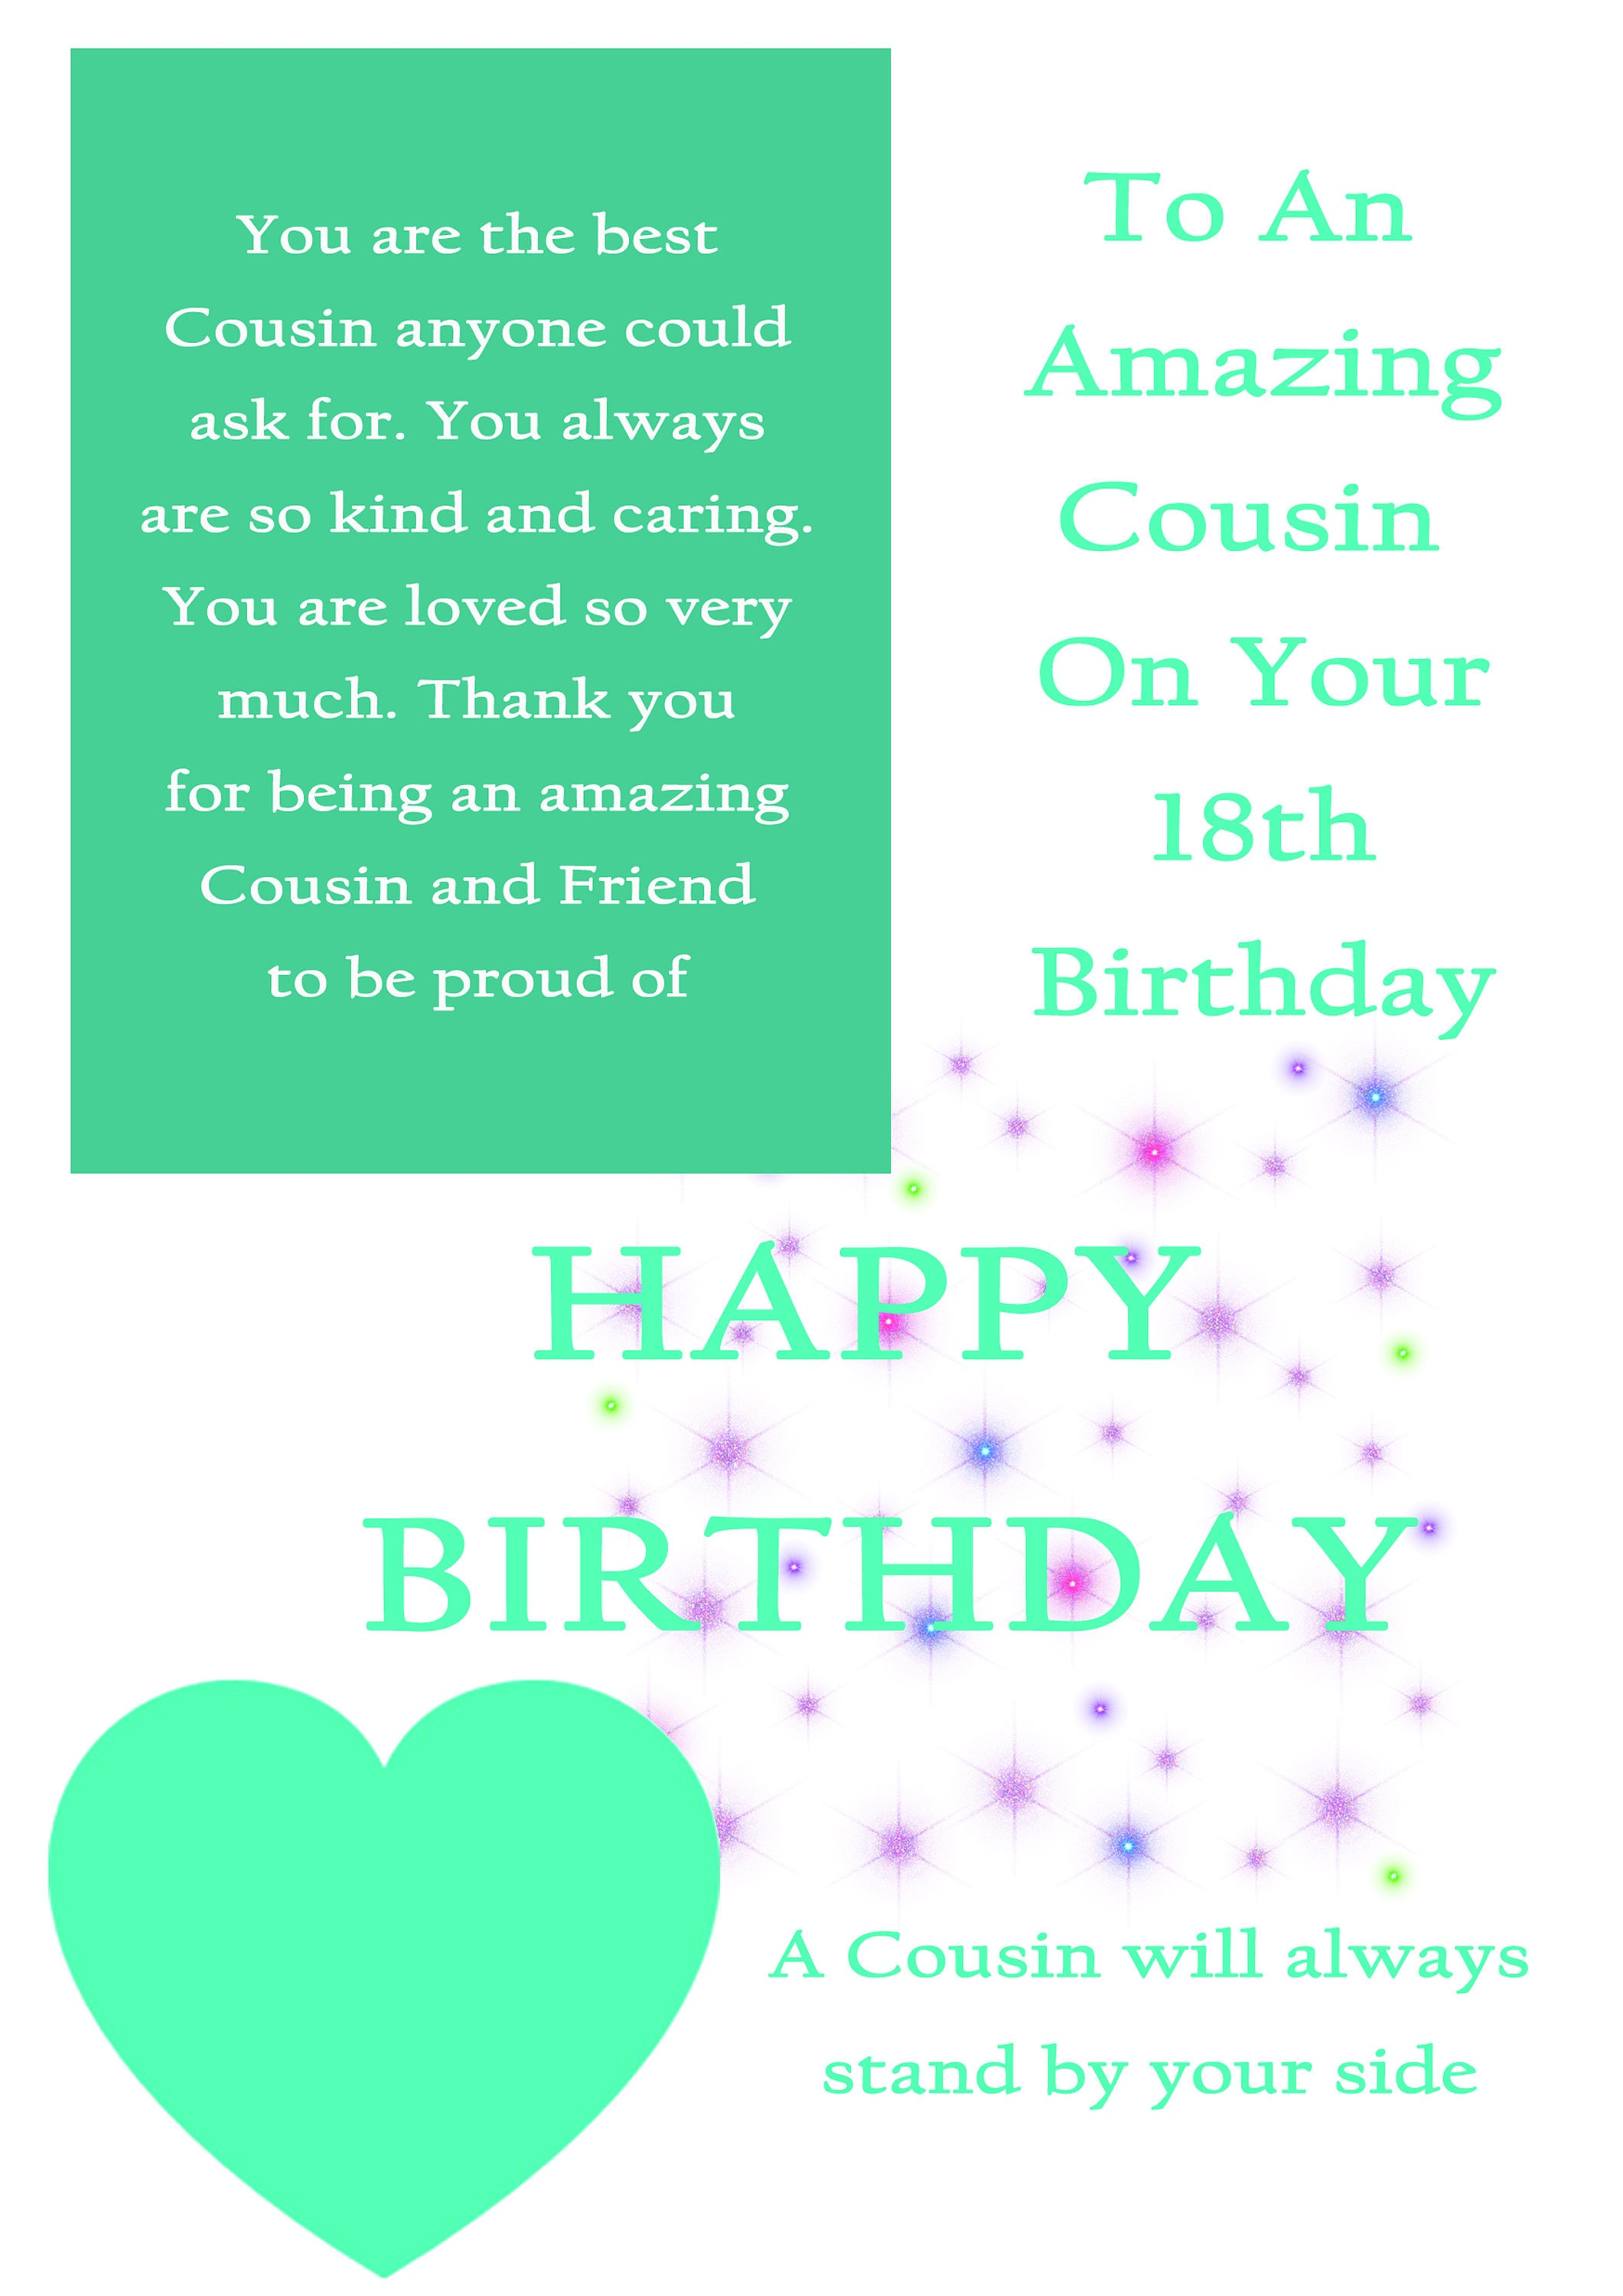 Cousin 18 Birthday Card With Removable Laminate Female